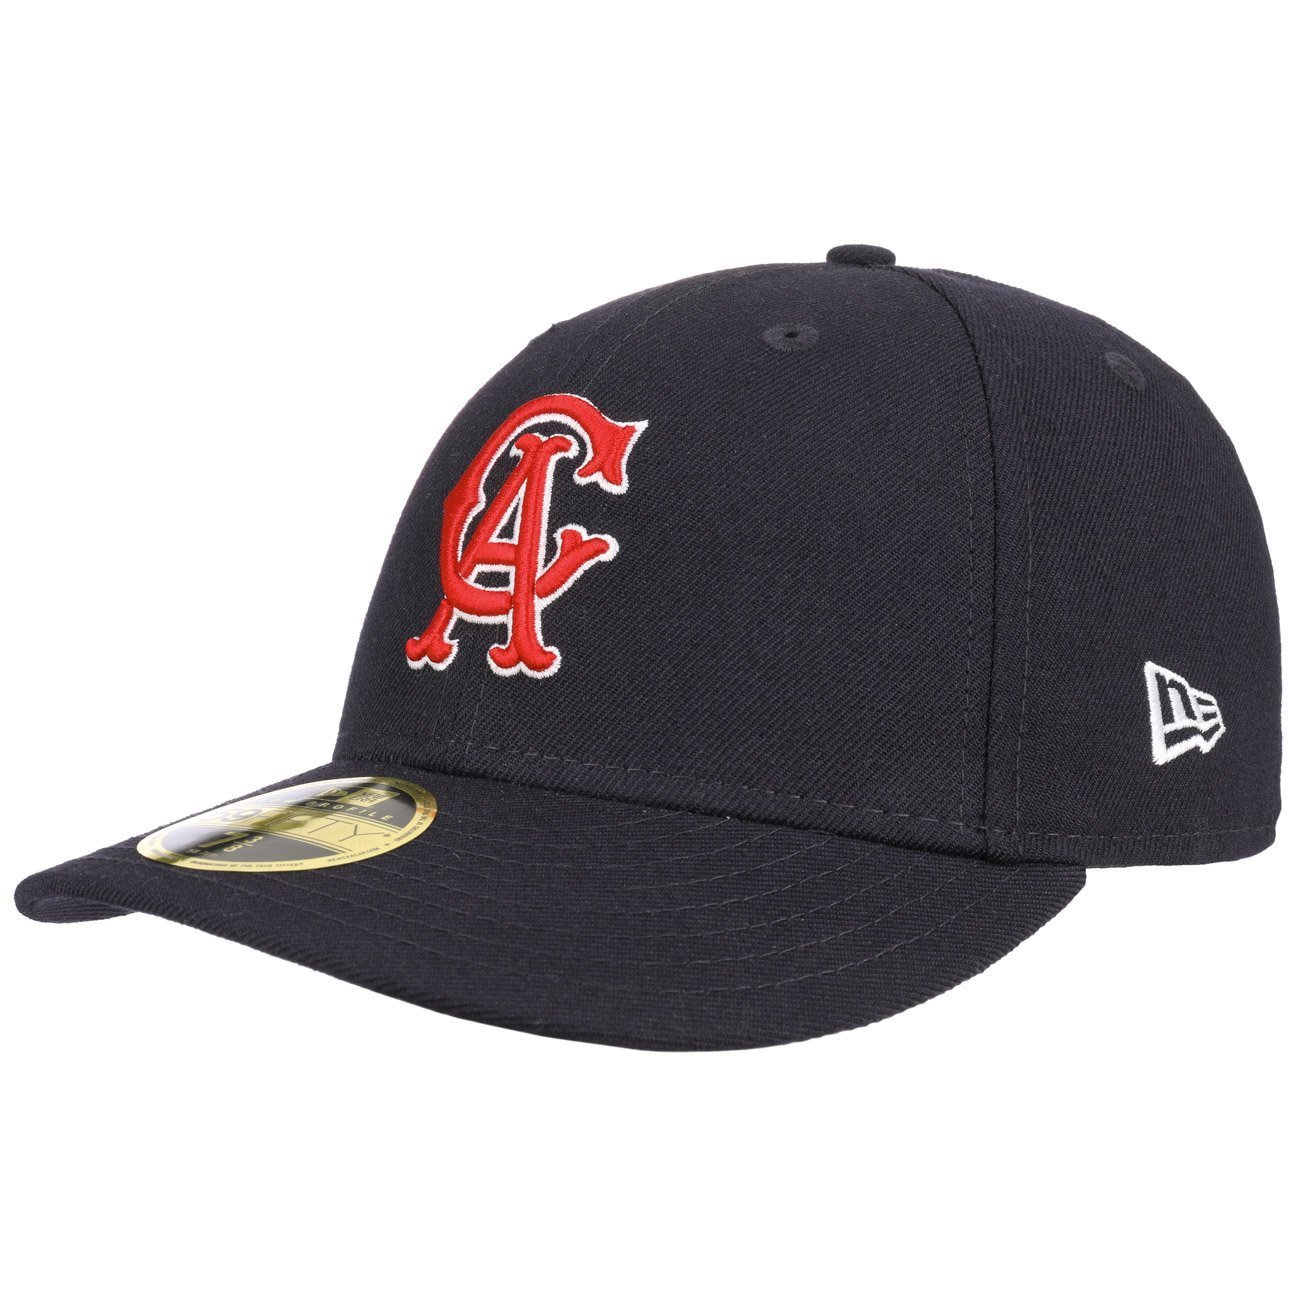 3a65b826348 New Era 59FIFTY California Angels Baseball Cap - Cooperstown Wool Fitted -  Navy 7  Amazon.co.uk  Clothing